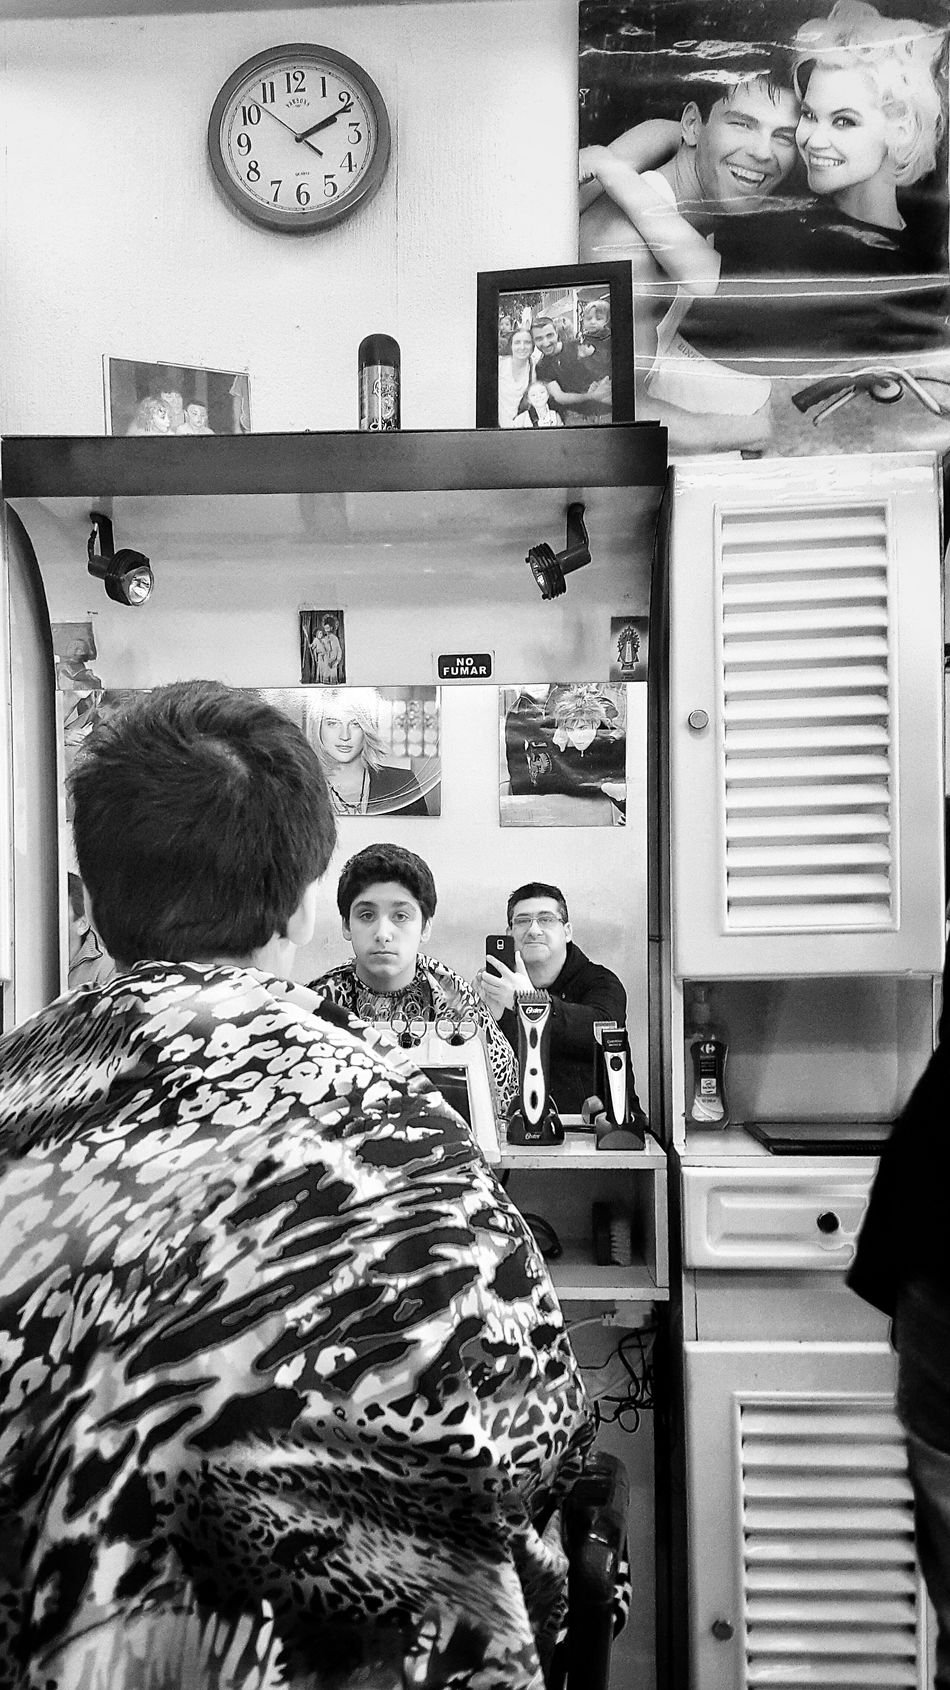 Haircut Haircut Time Haircut! Haircuttime Haircut (: HairCut Needed Young Men People Photography People People_bw Black And White Photography Blackandwhite Photography Black And White Black And White Portrait EyeEm Best Shots - Black + White Reflection Reflection_collection Reflections Reflection Photography Reflections From Above Mirror Mirror Reflection